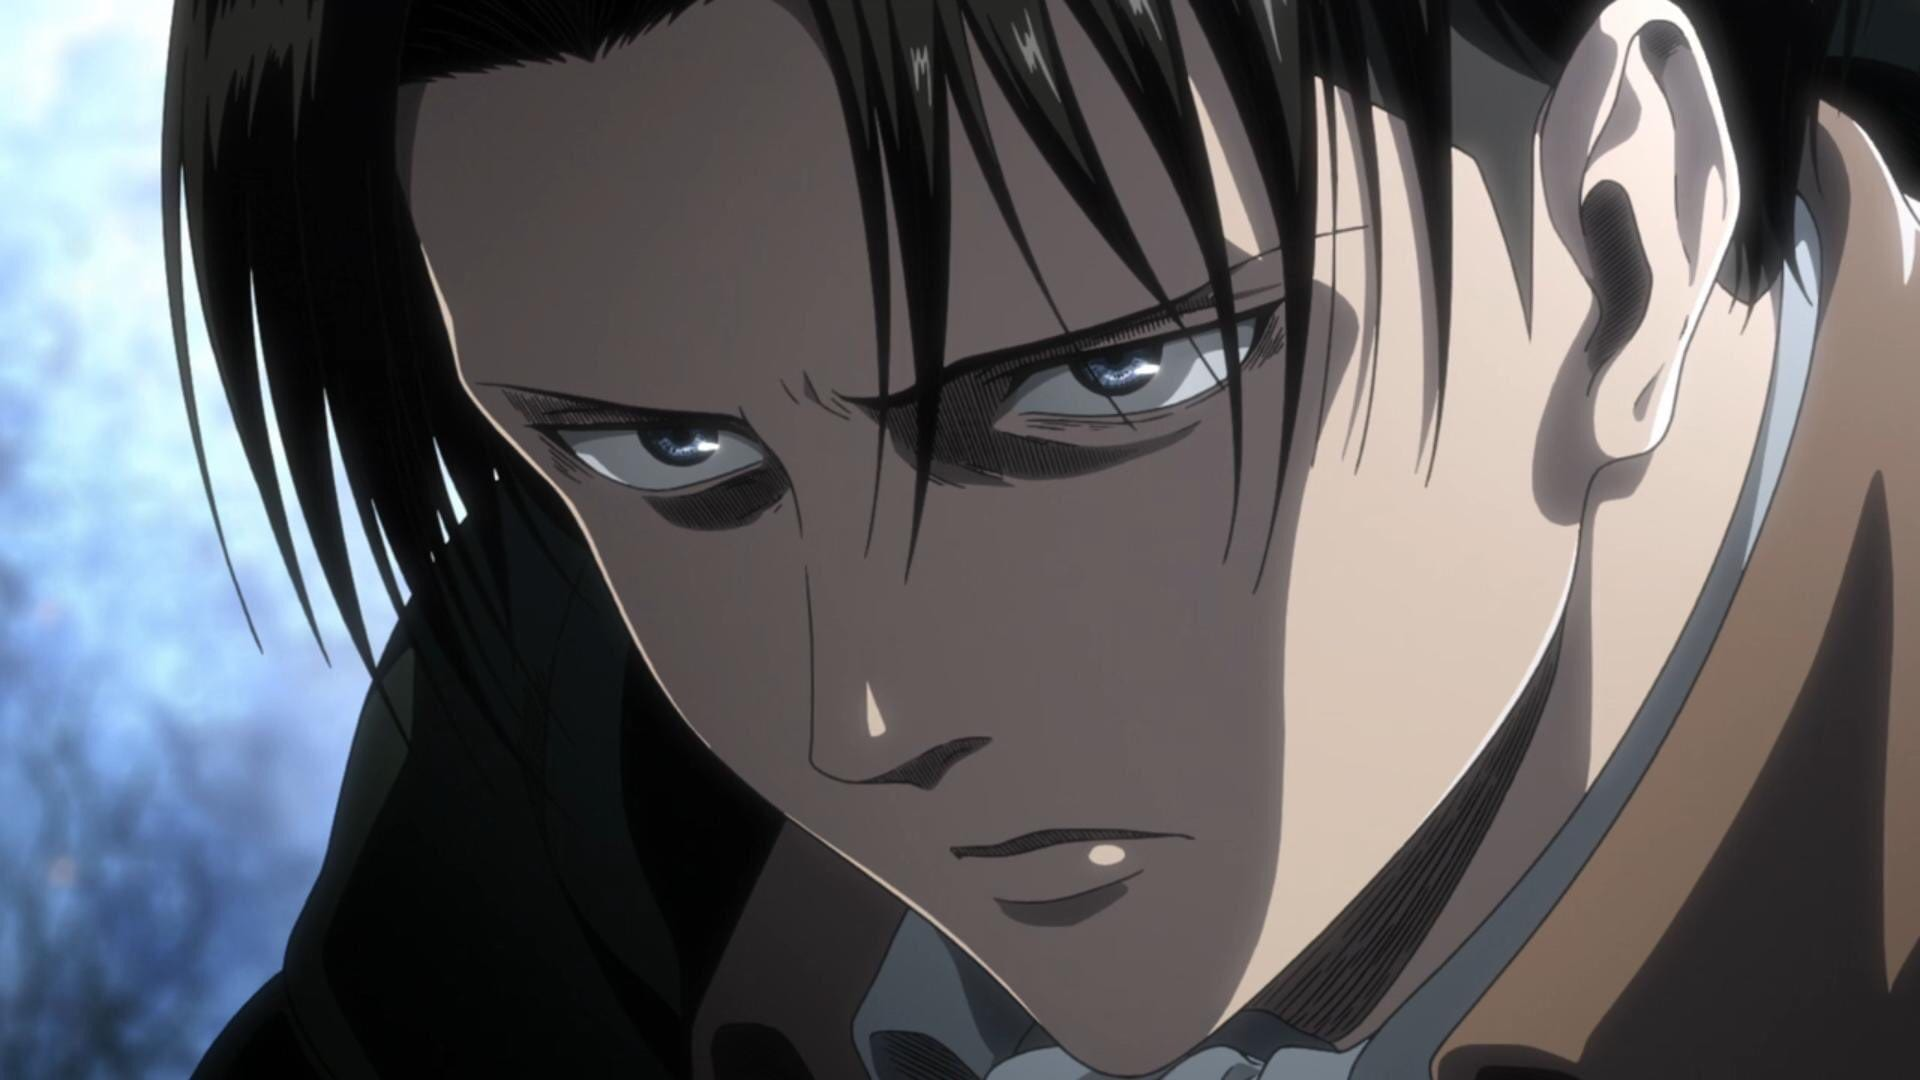 Attack on Titan Season 3 Part 2 Episode 4: Levi vs The Beast